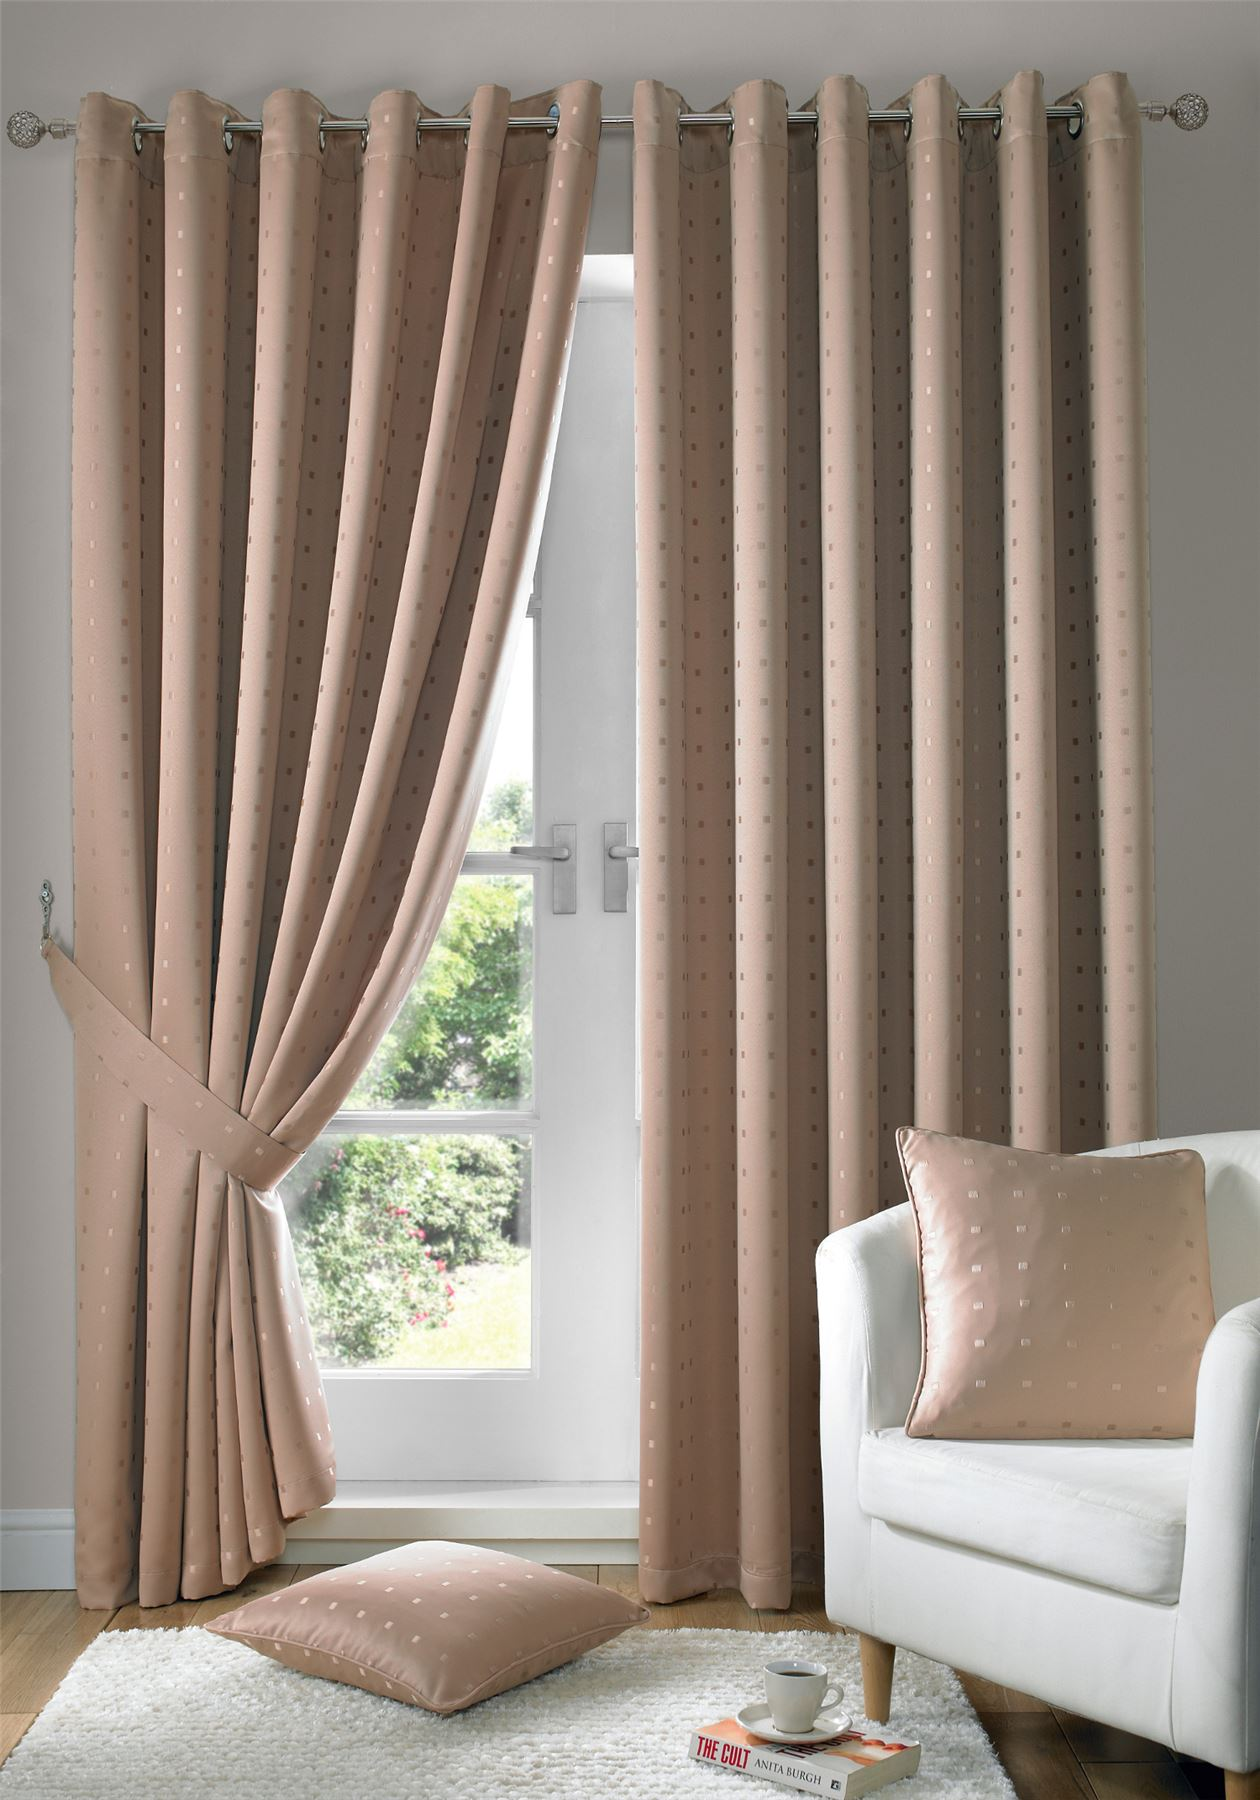 jacquard check latte beige lined ring top eyelet curtains drapes 6 sizes ebay. Black Bedroom Furniture Sets. Home Design Ideas